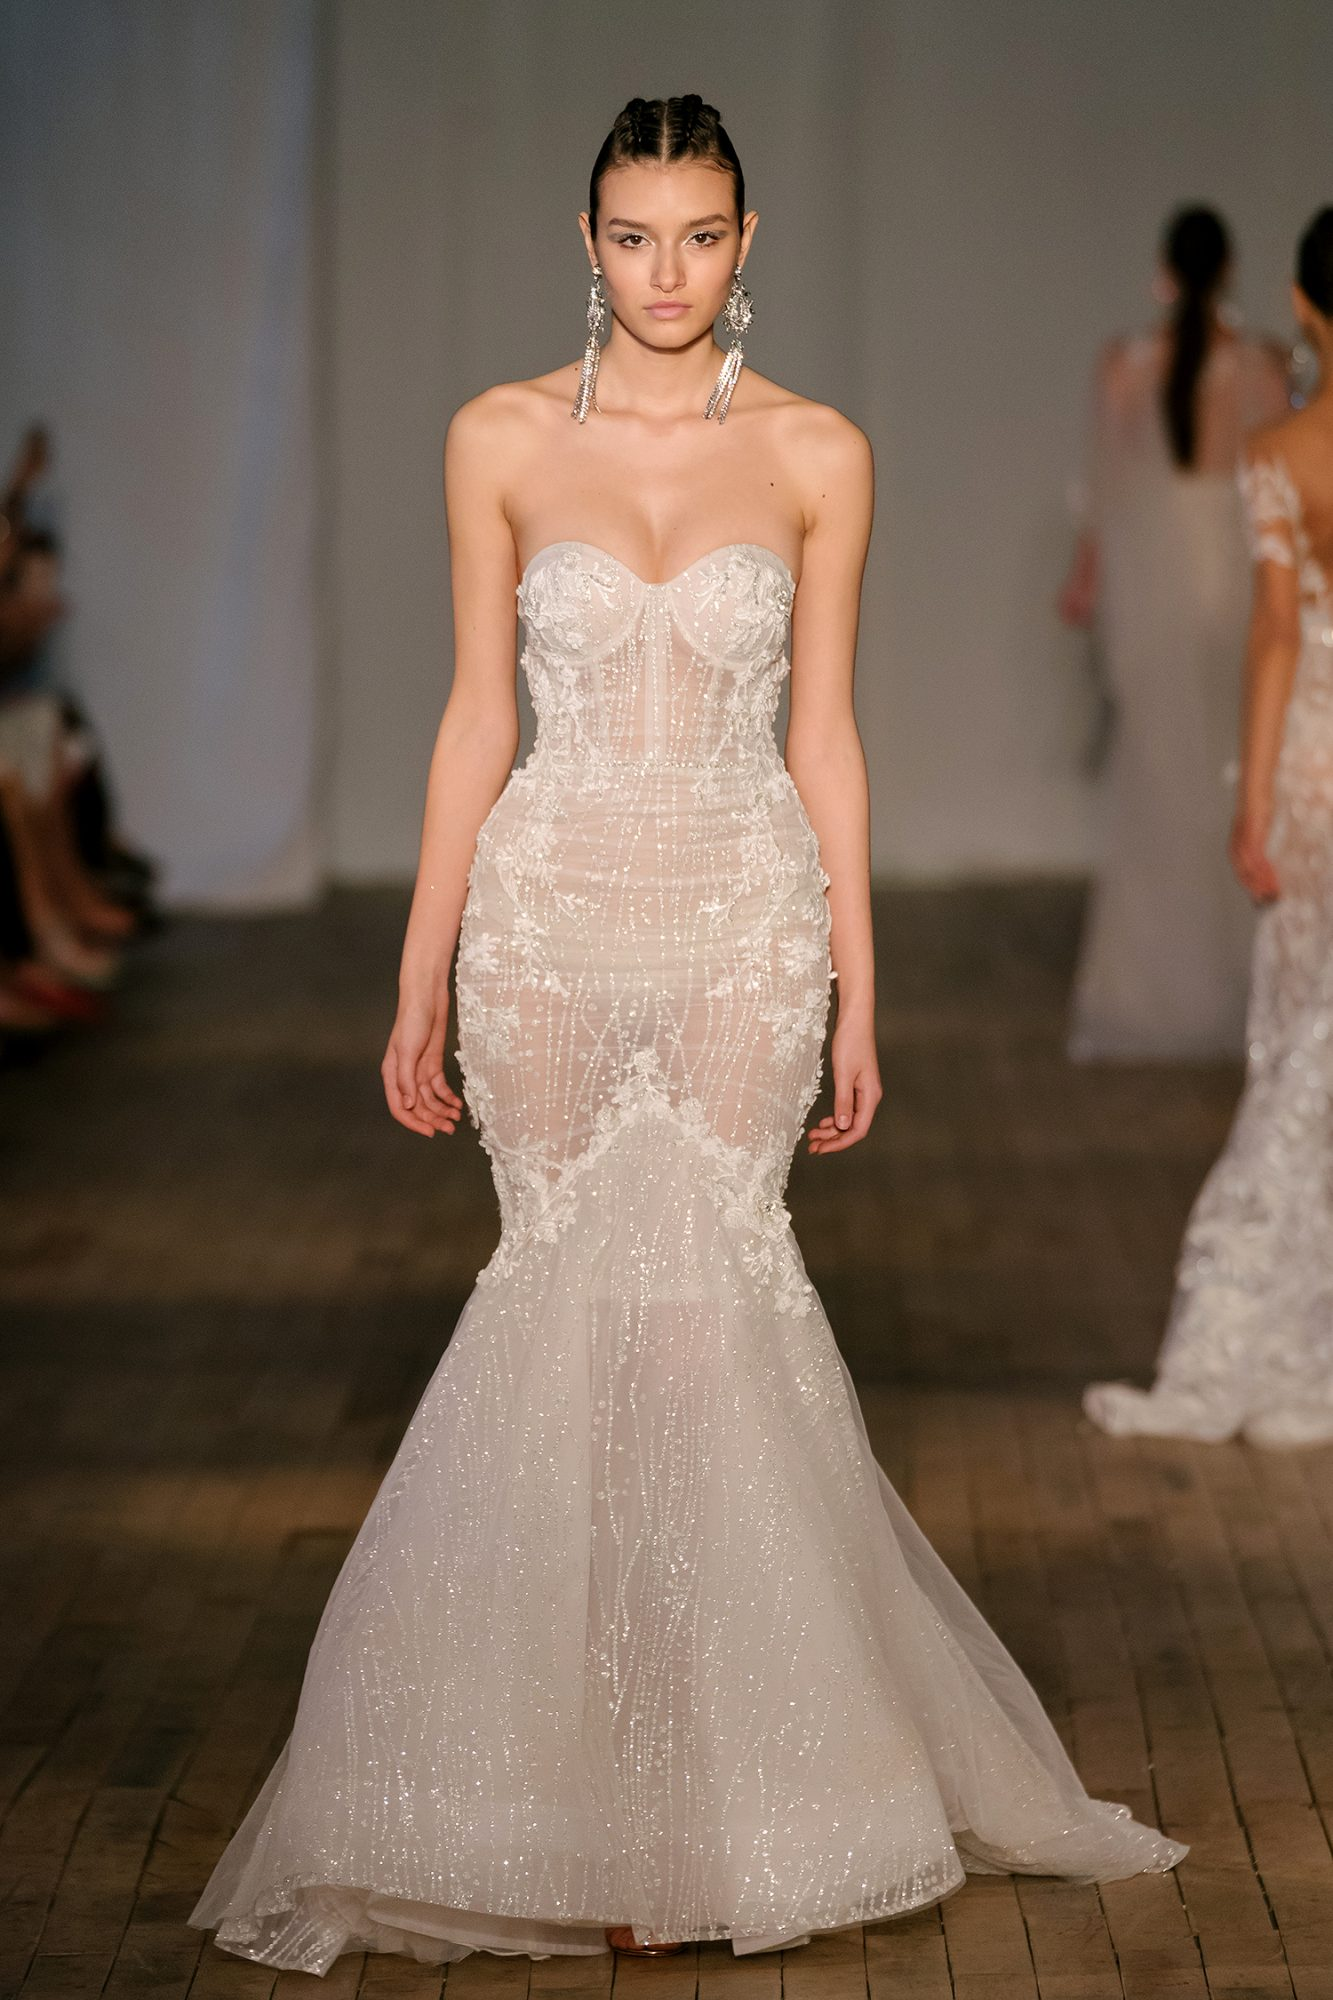 Sheer trumpet wedding dress with strapless neckline and floral appliqués